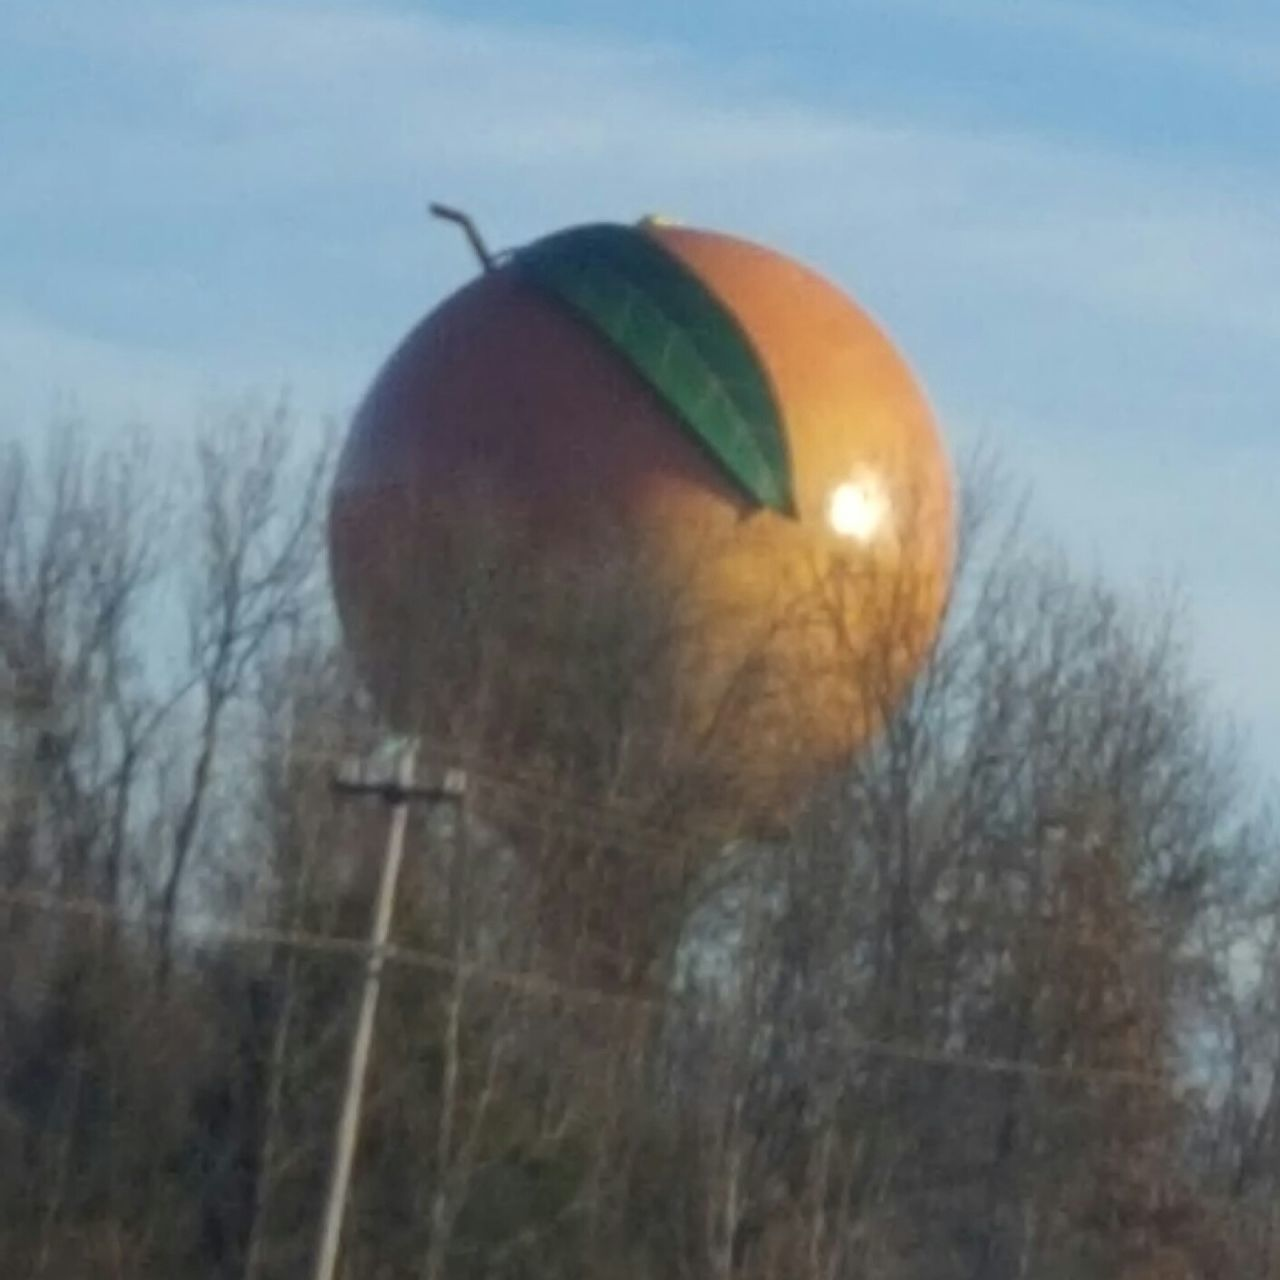 The Peachoid Outdoors One Person Close-up Nature Sky Day Ball Outdoor Photography Love My Life  Love Where You Live No People Peachoid Giant Peach Water Tower Gaffney South Carolina Day Trip